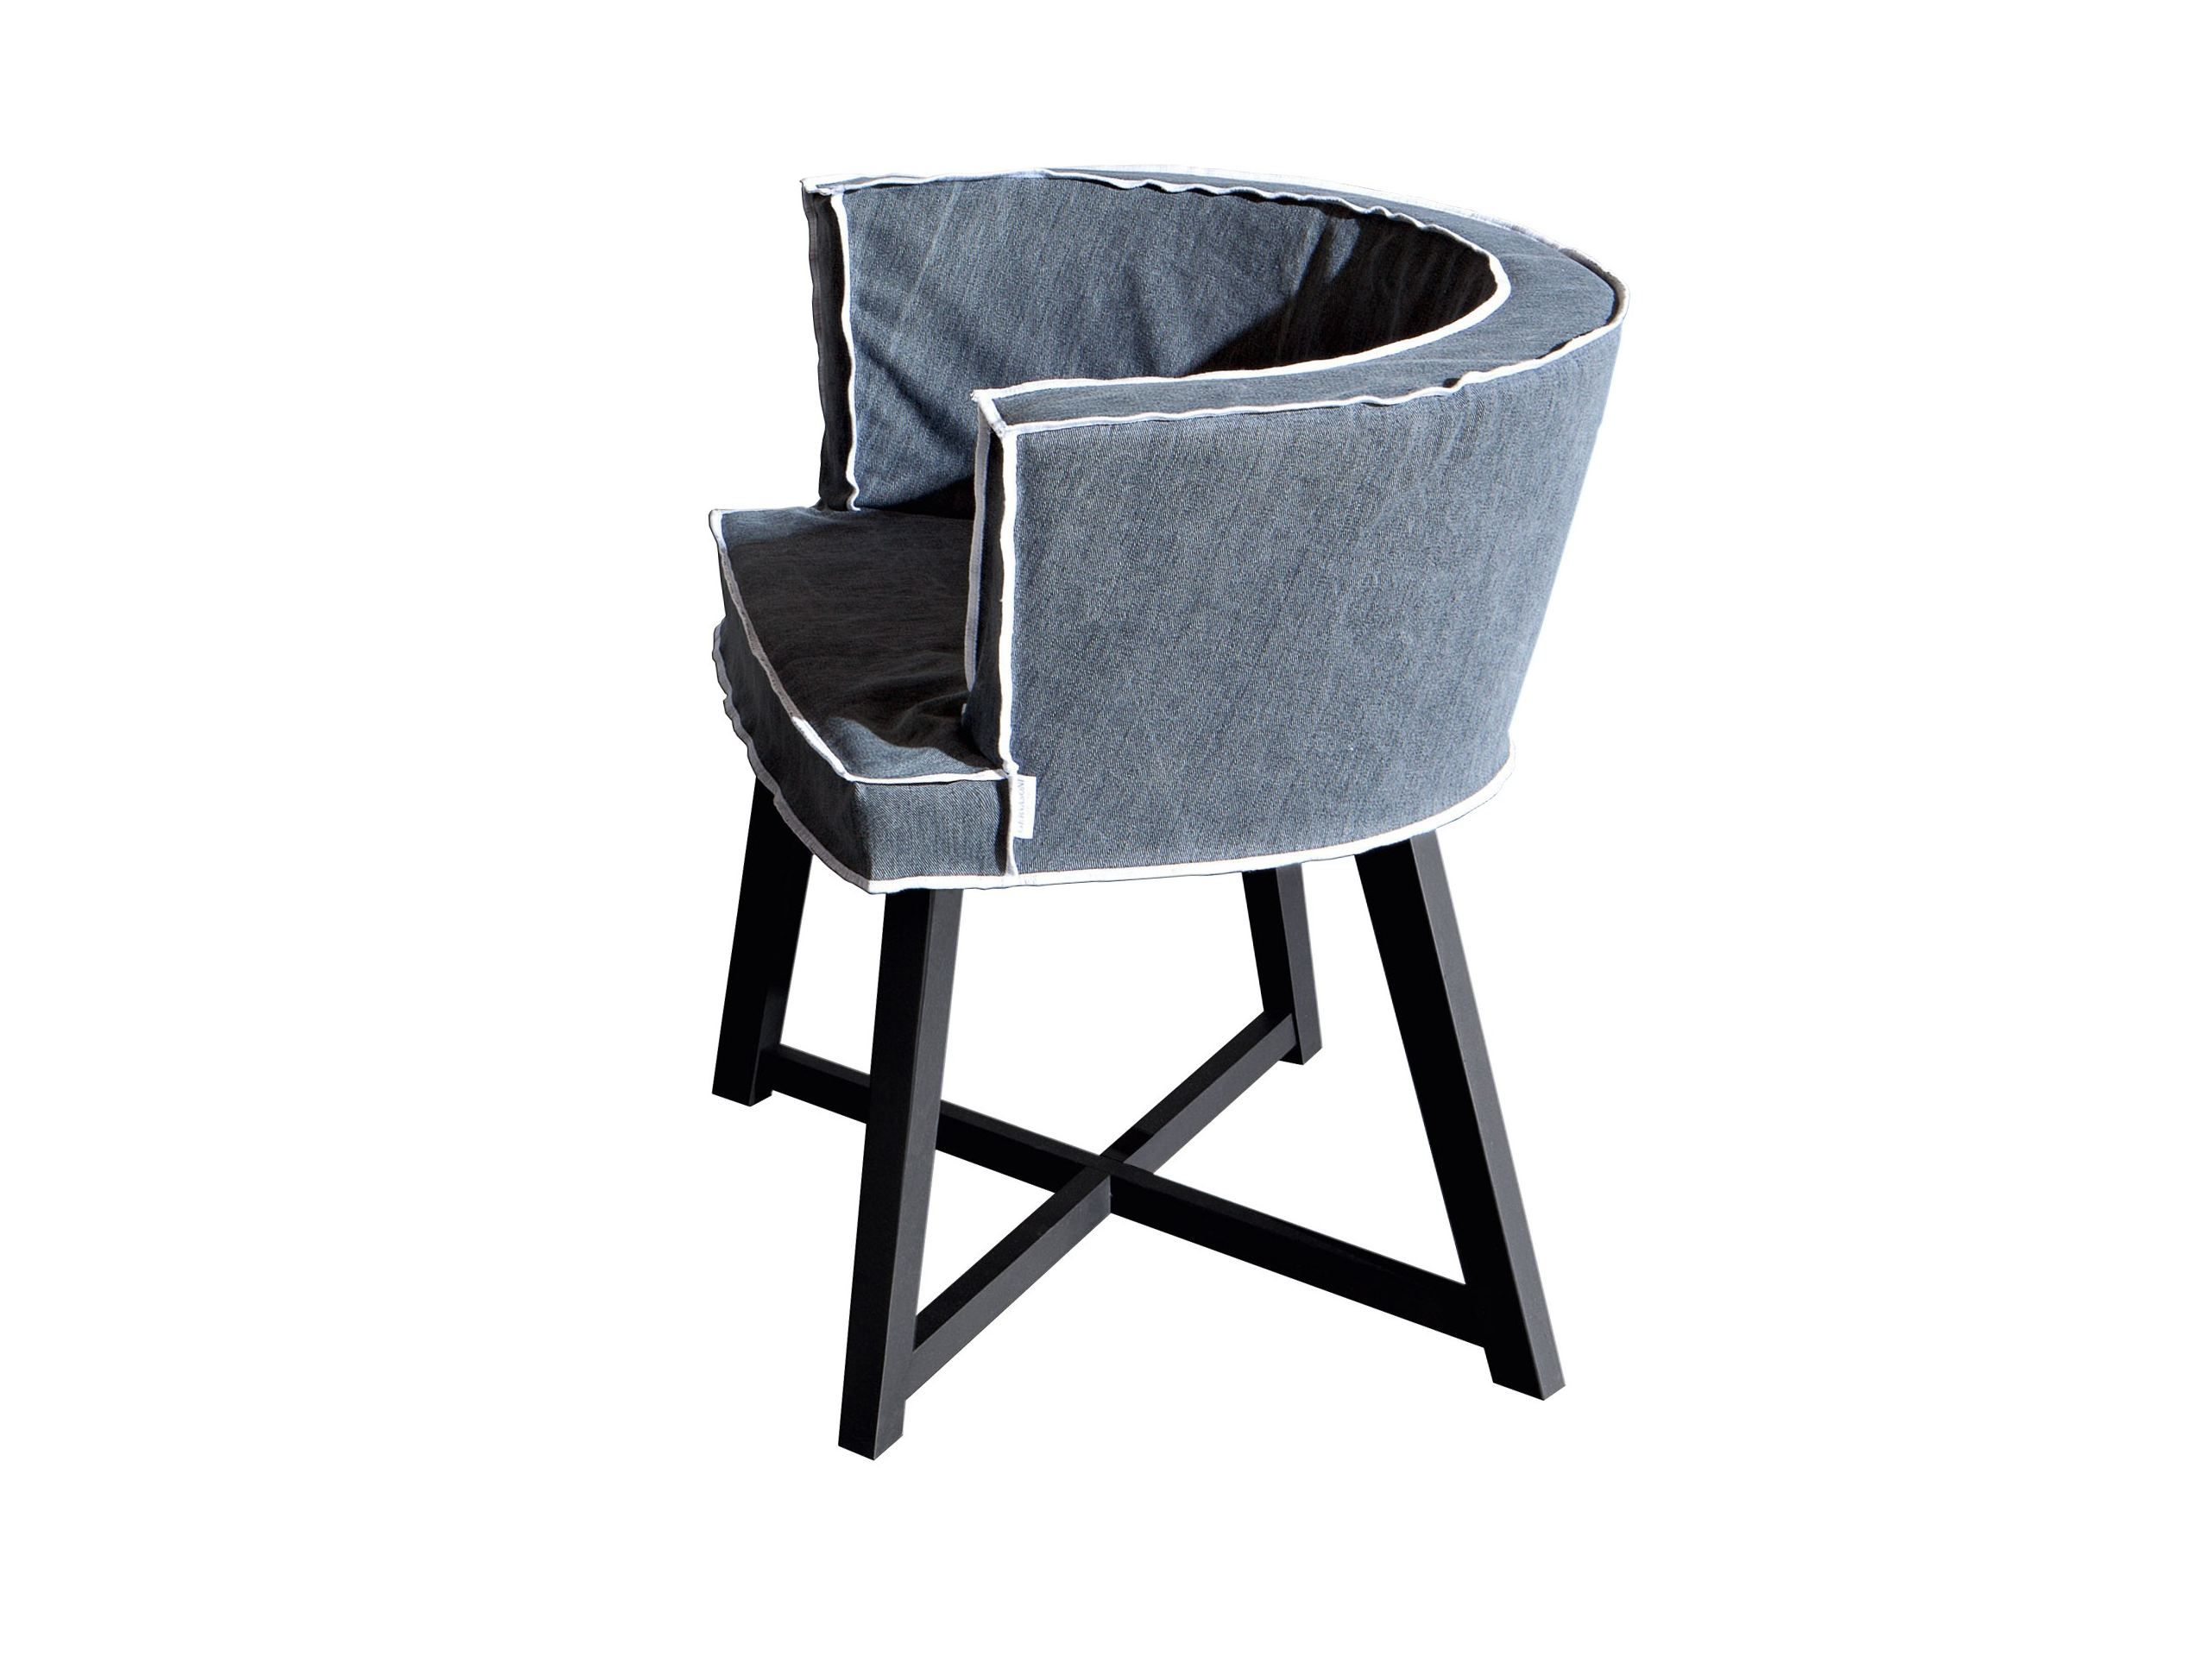 UPHOLSTERED FABRIC EASY CHAIR WITH REMOVABLE COVER GRAY 26 GRAY .